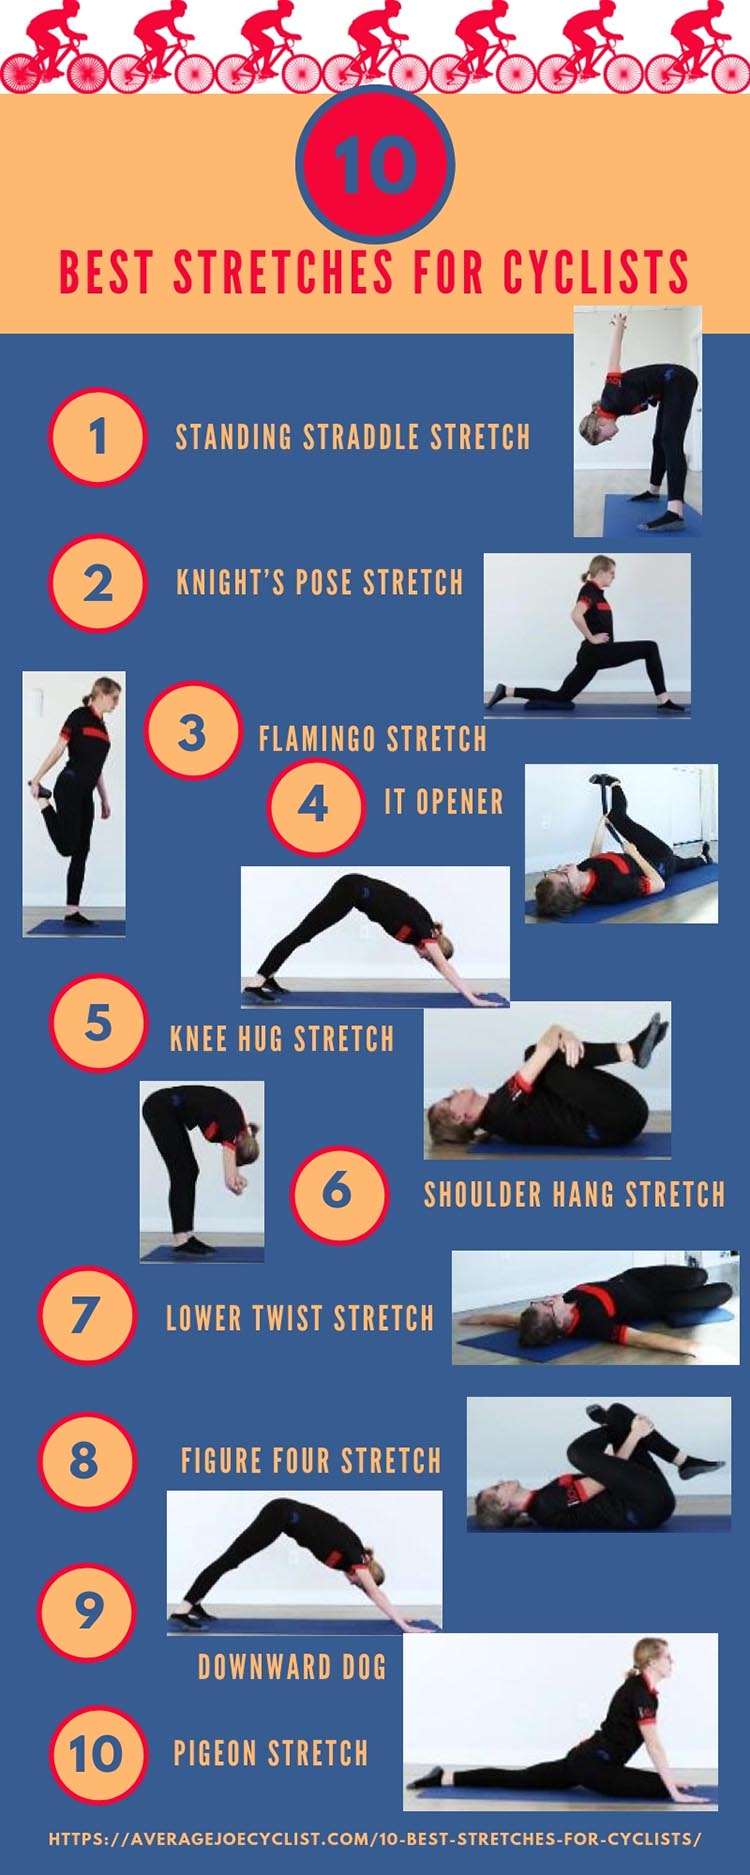 The 10 Best Stretches for Cyclists